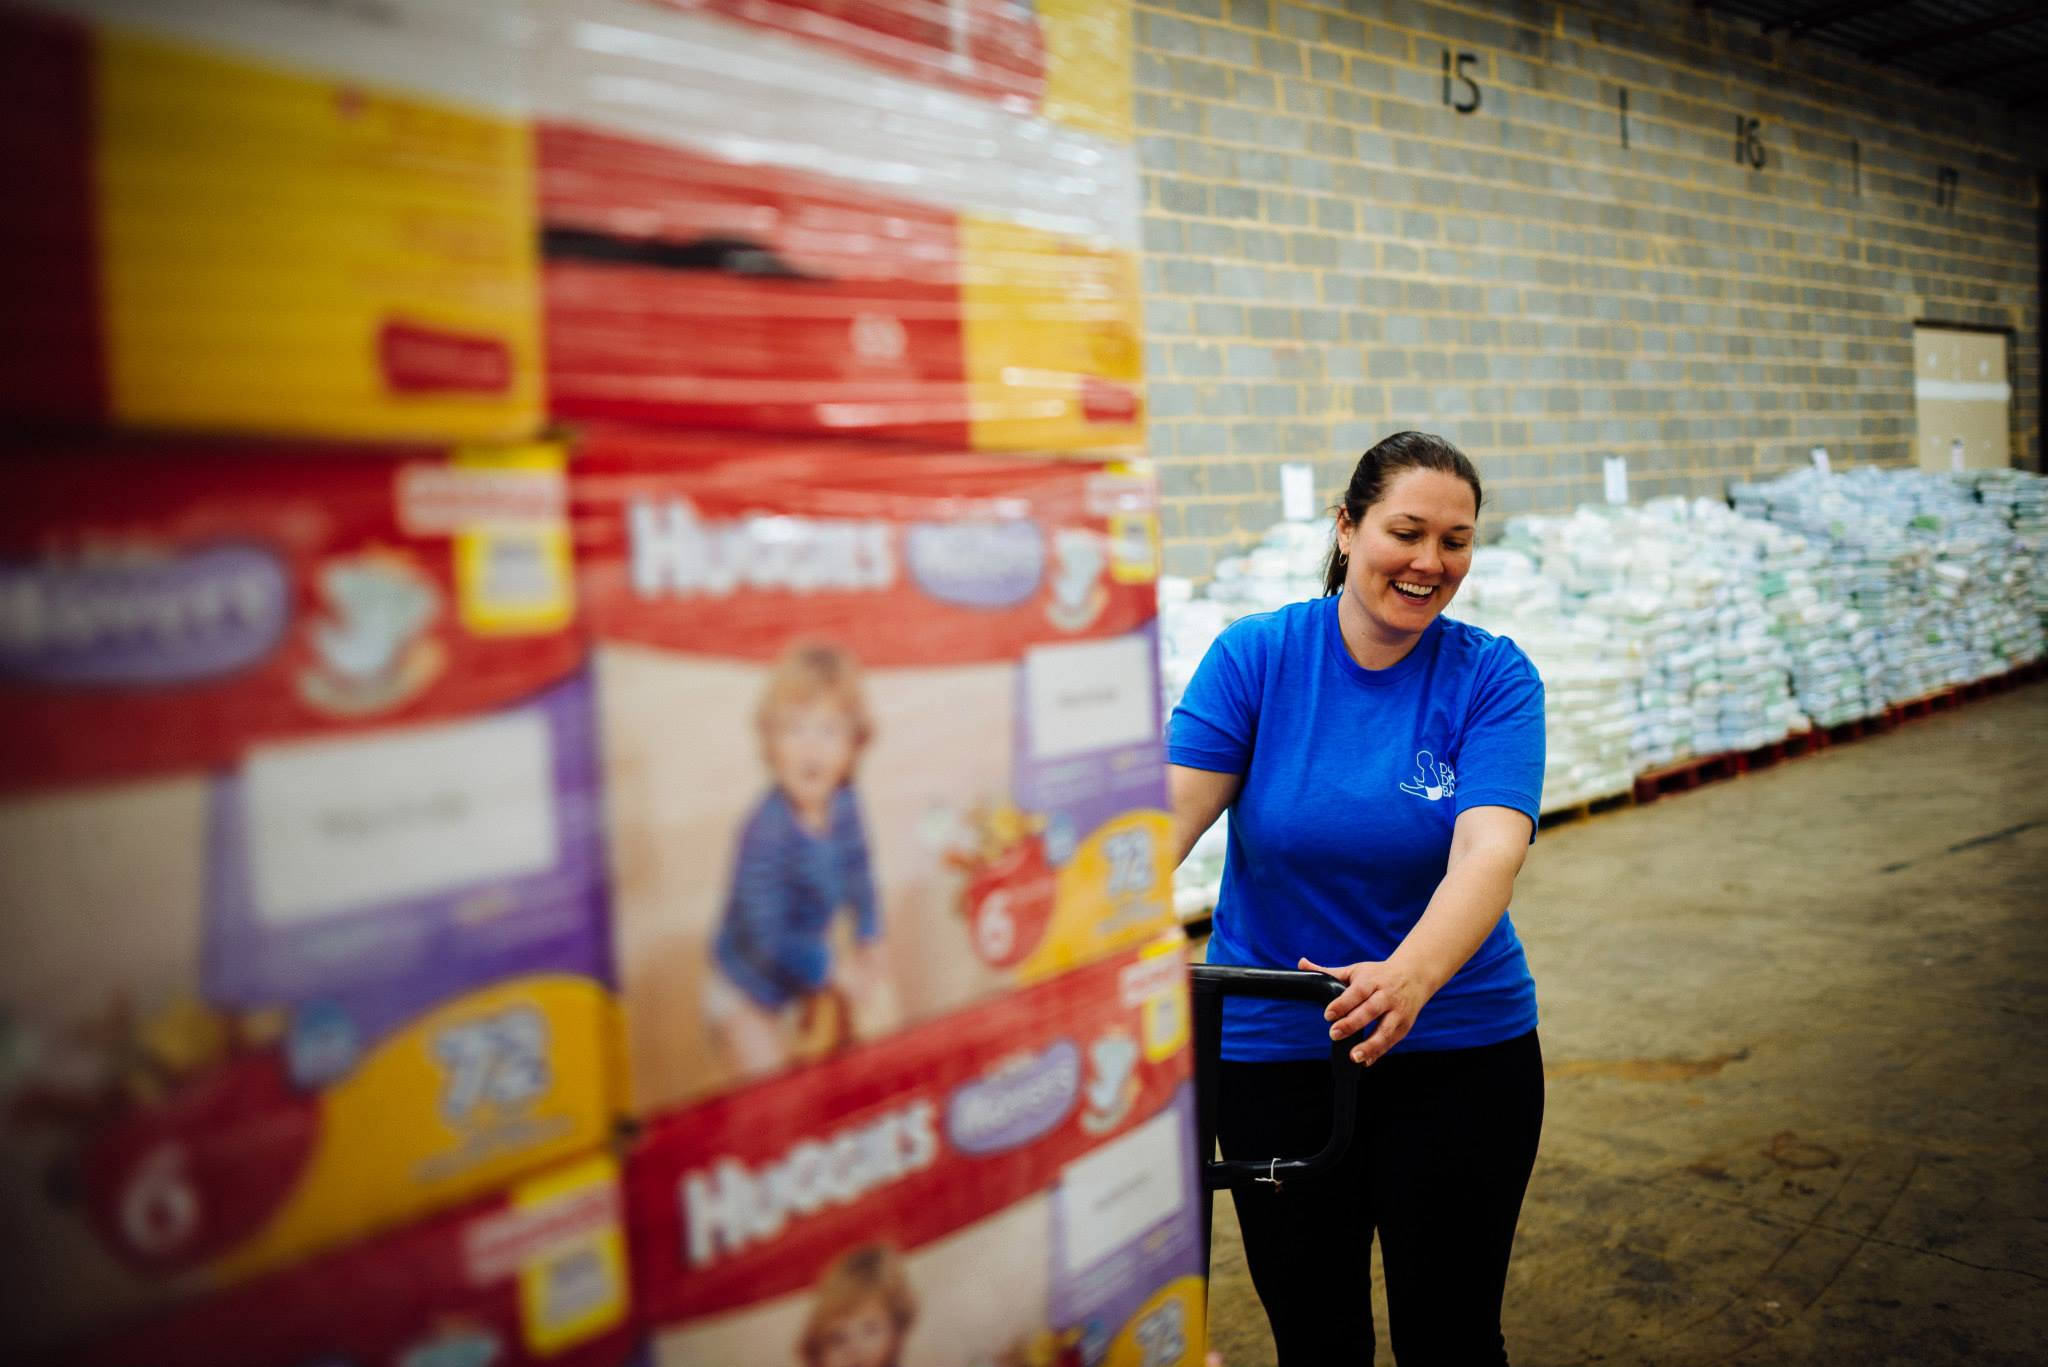 One mother helps thousands more with a common struggle: diapers